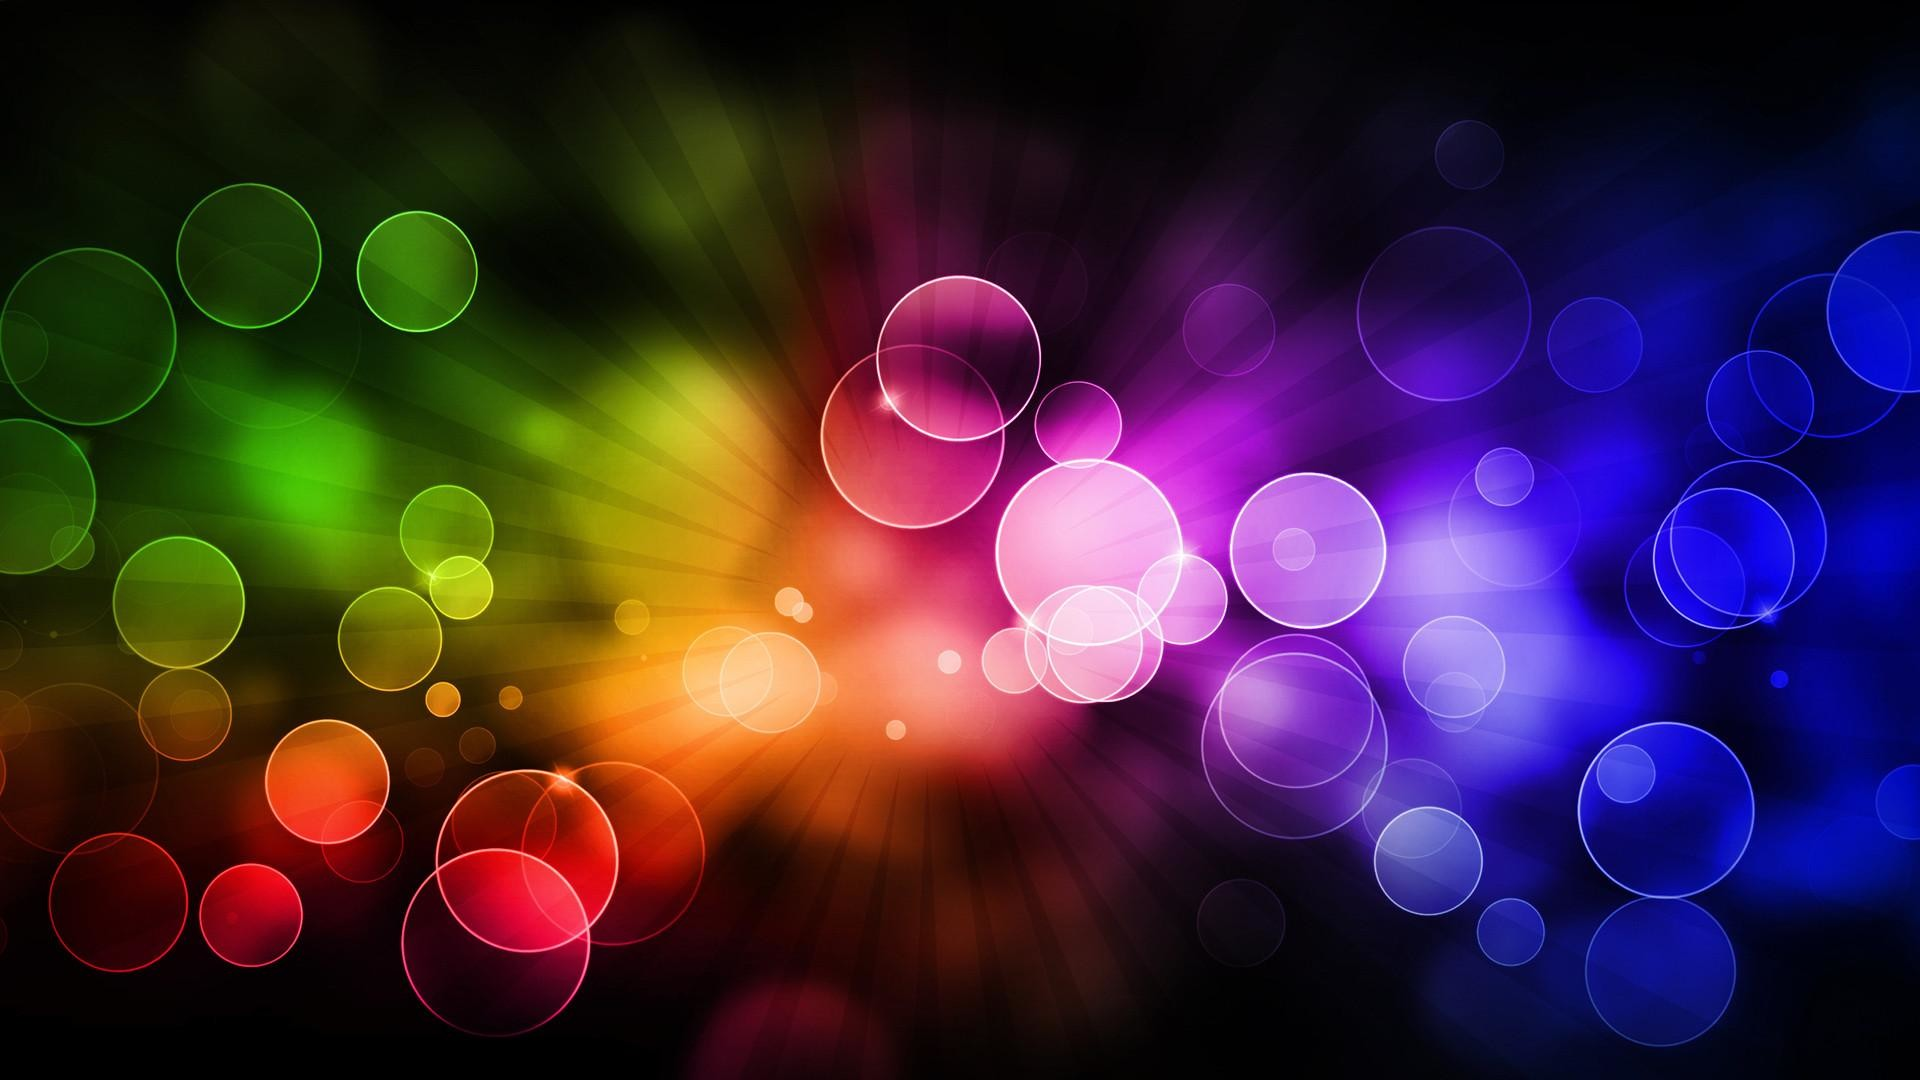 Hd Wallpaper Rainbow Cool Backgrounds Wallpapers Hd Wallpapers .